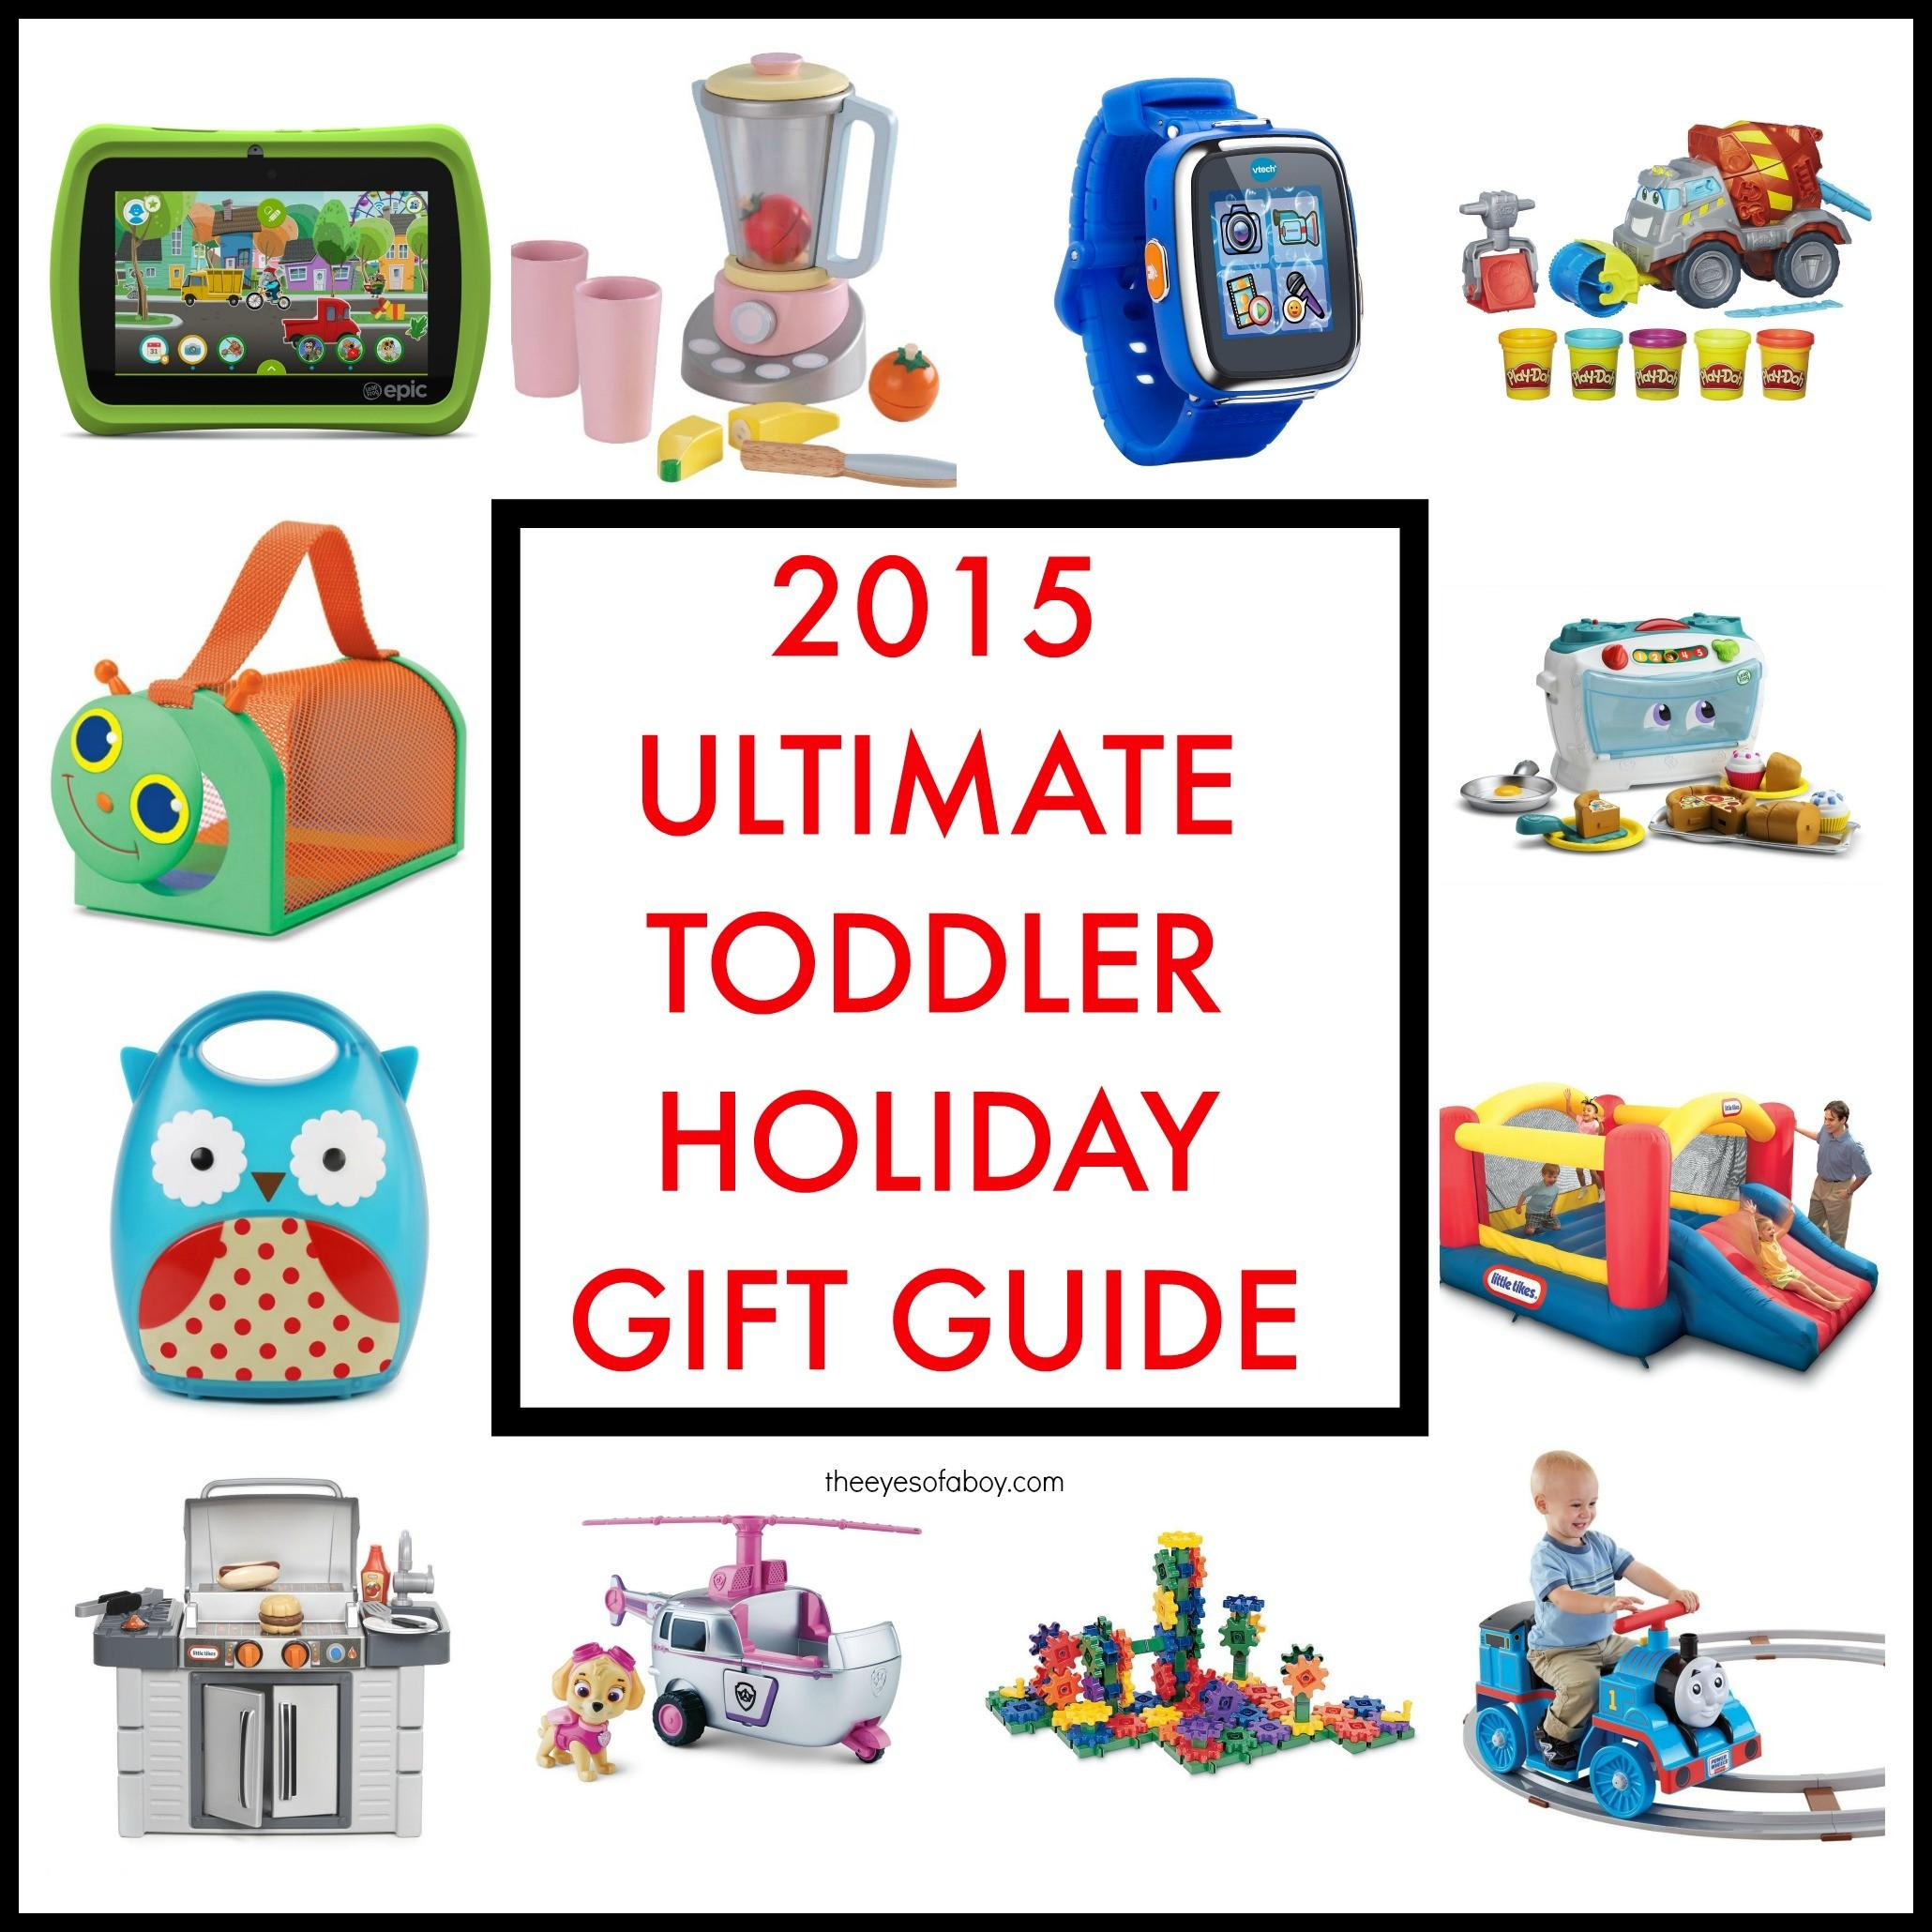 2015 Ultimate Toddler Holiday Gift Guide Ideas